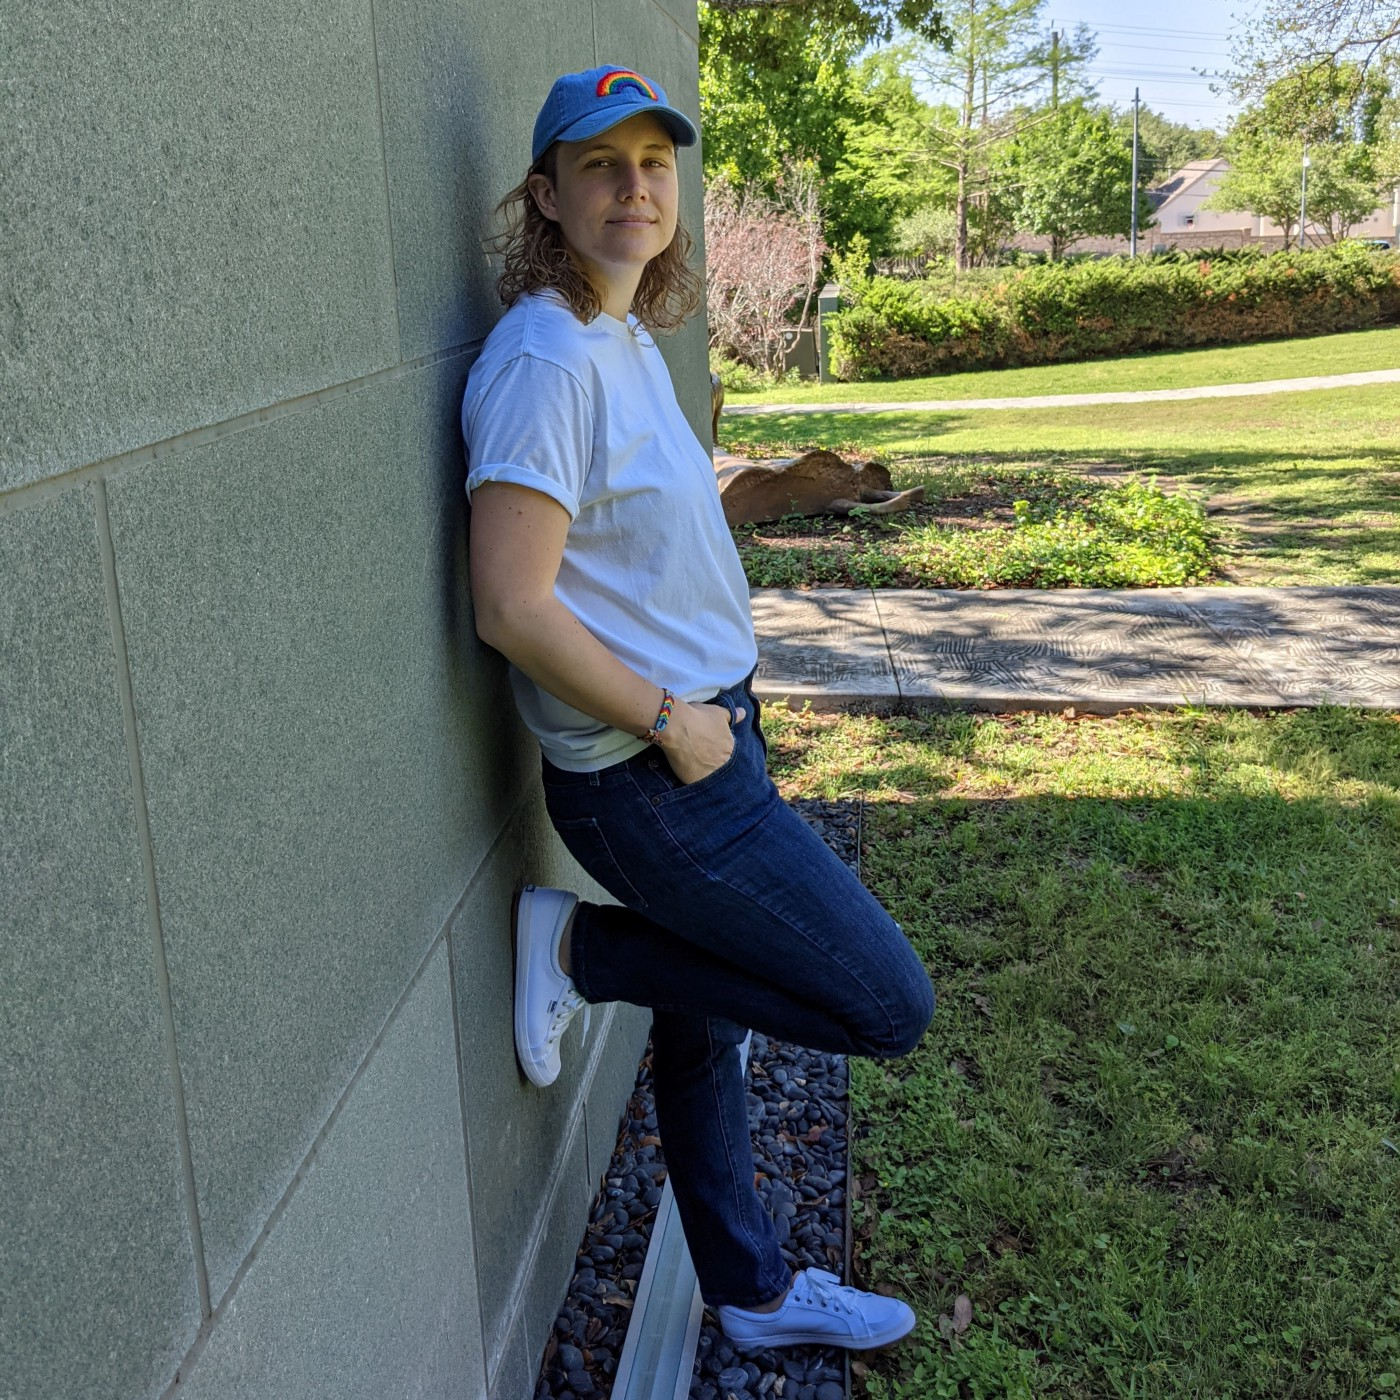 Montana, in a white t-shirt, jeans, white keds, and denim baseball cap embroidered with a rainbow, leans against a grey stone wall